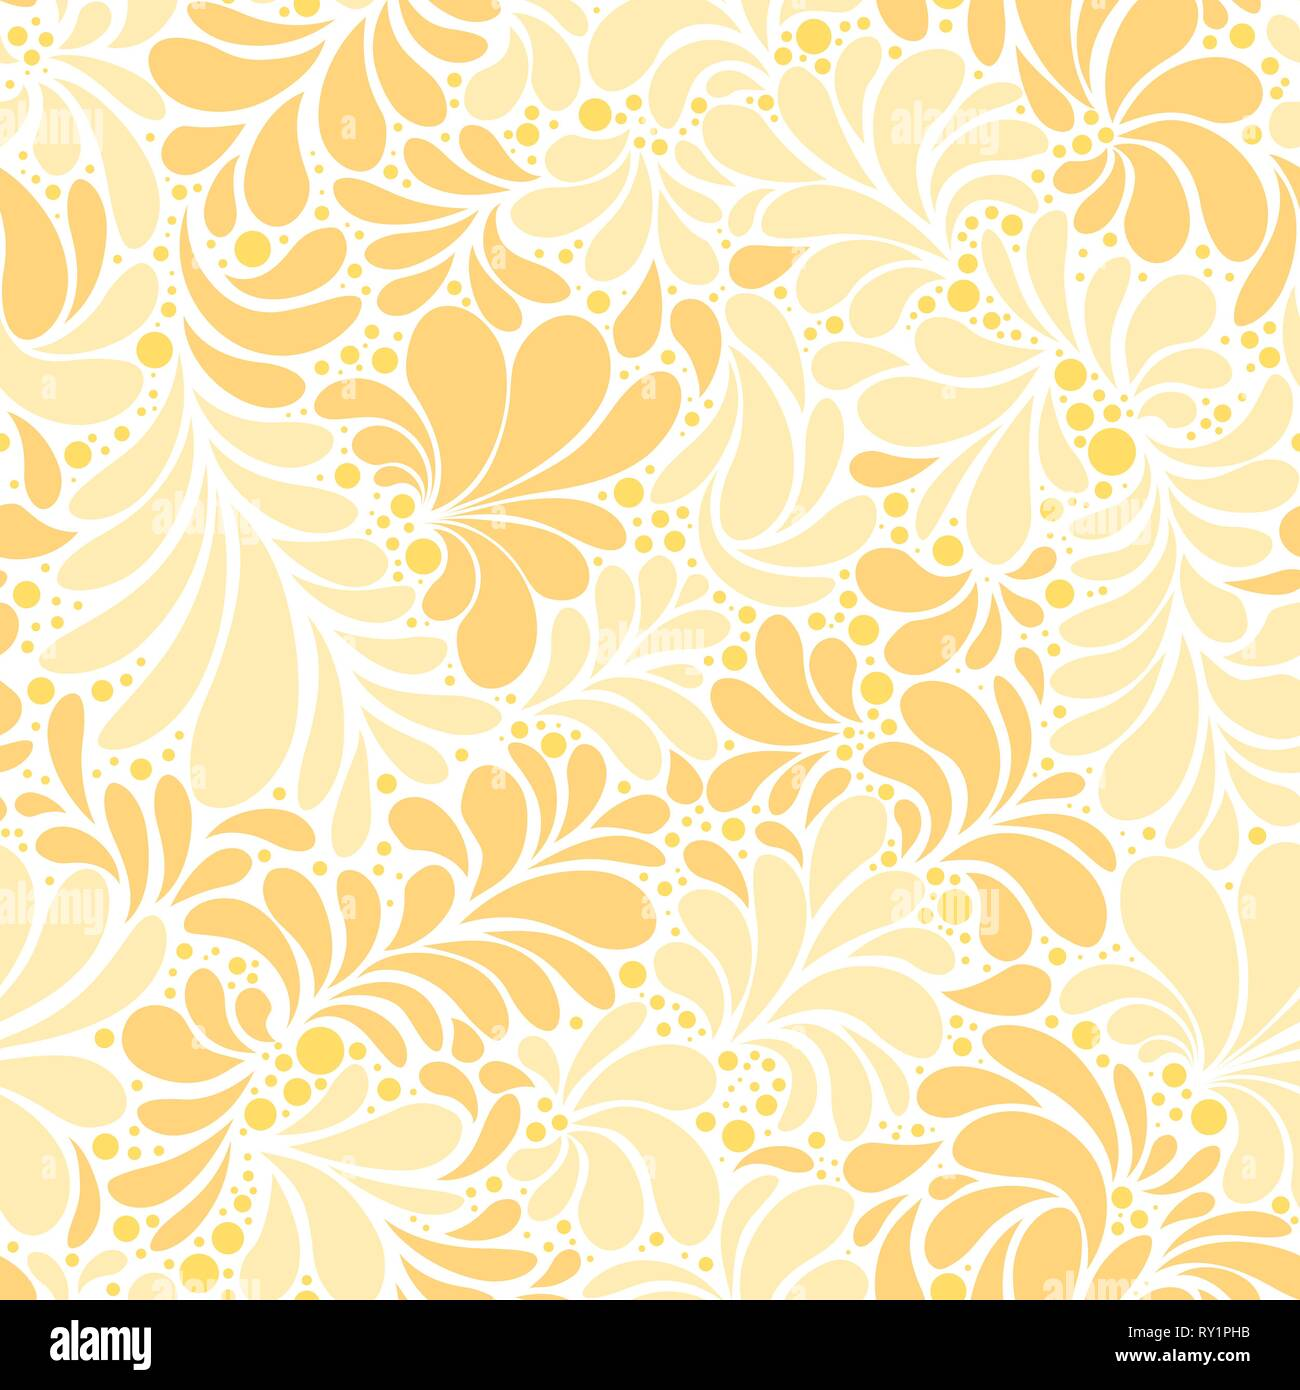 Paisley Or Damask Golden Floral Seamless Pattern Vector Ornament